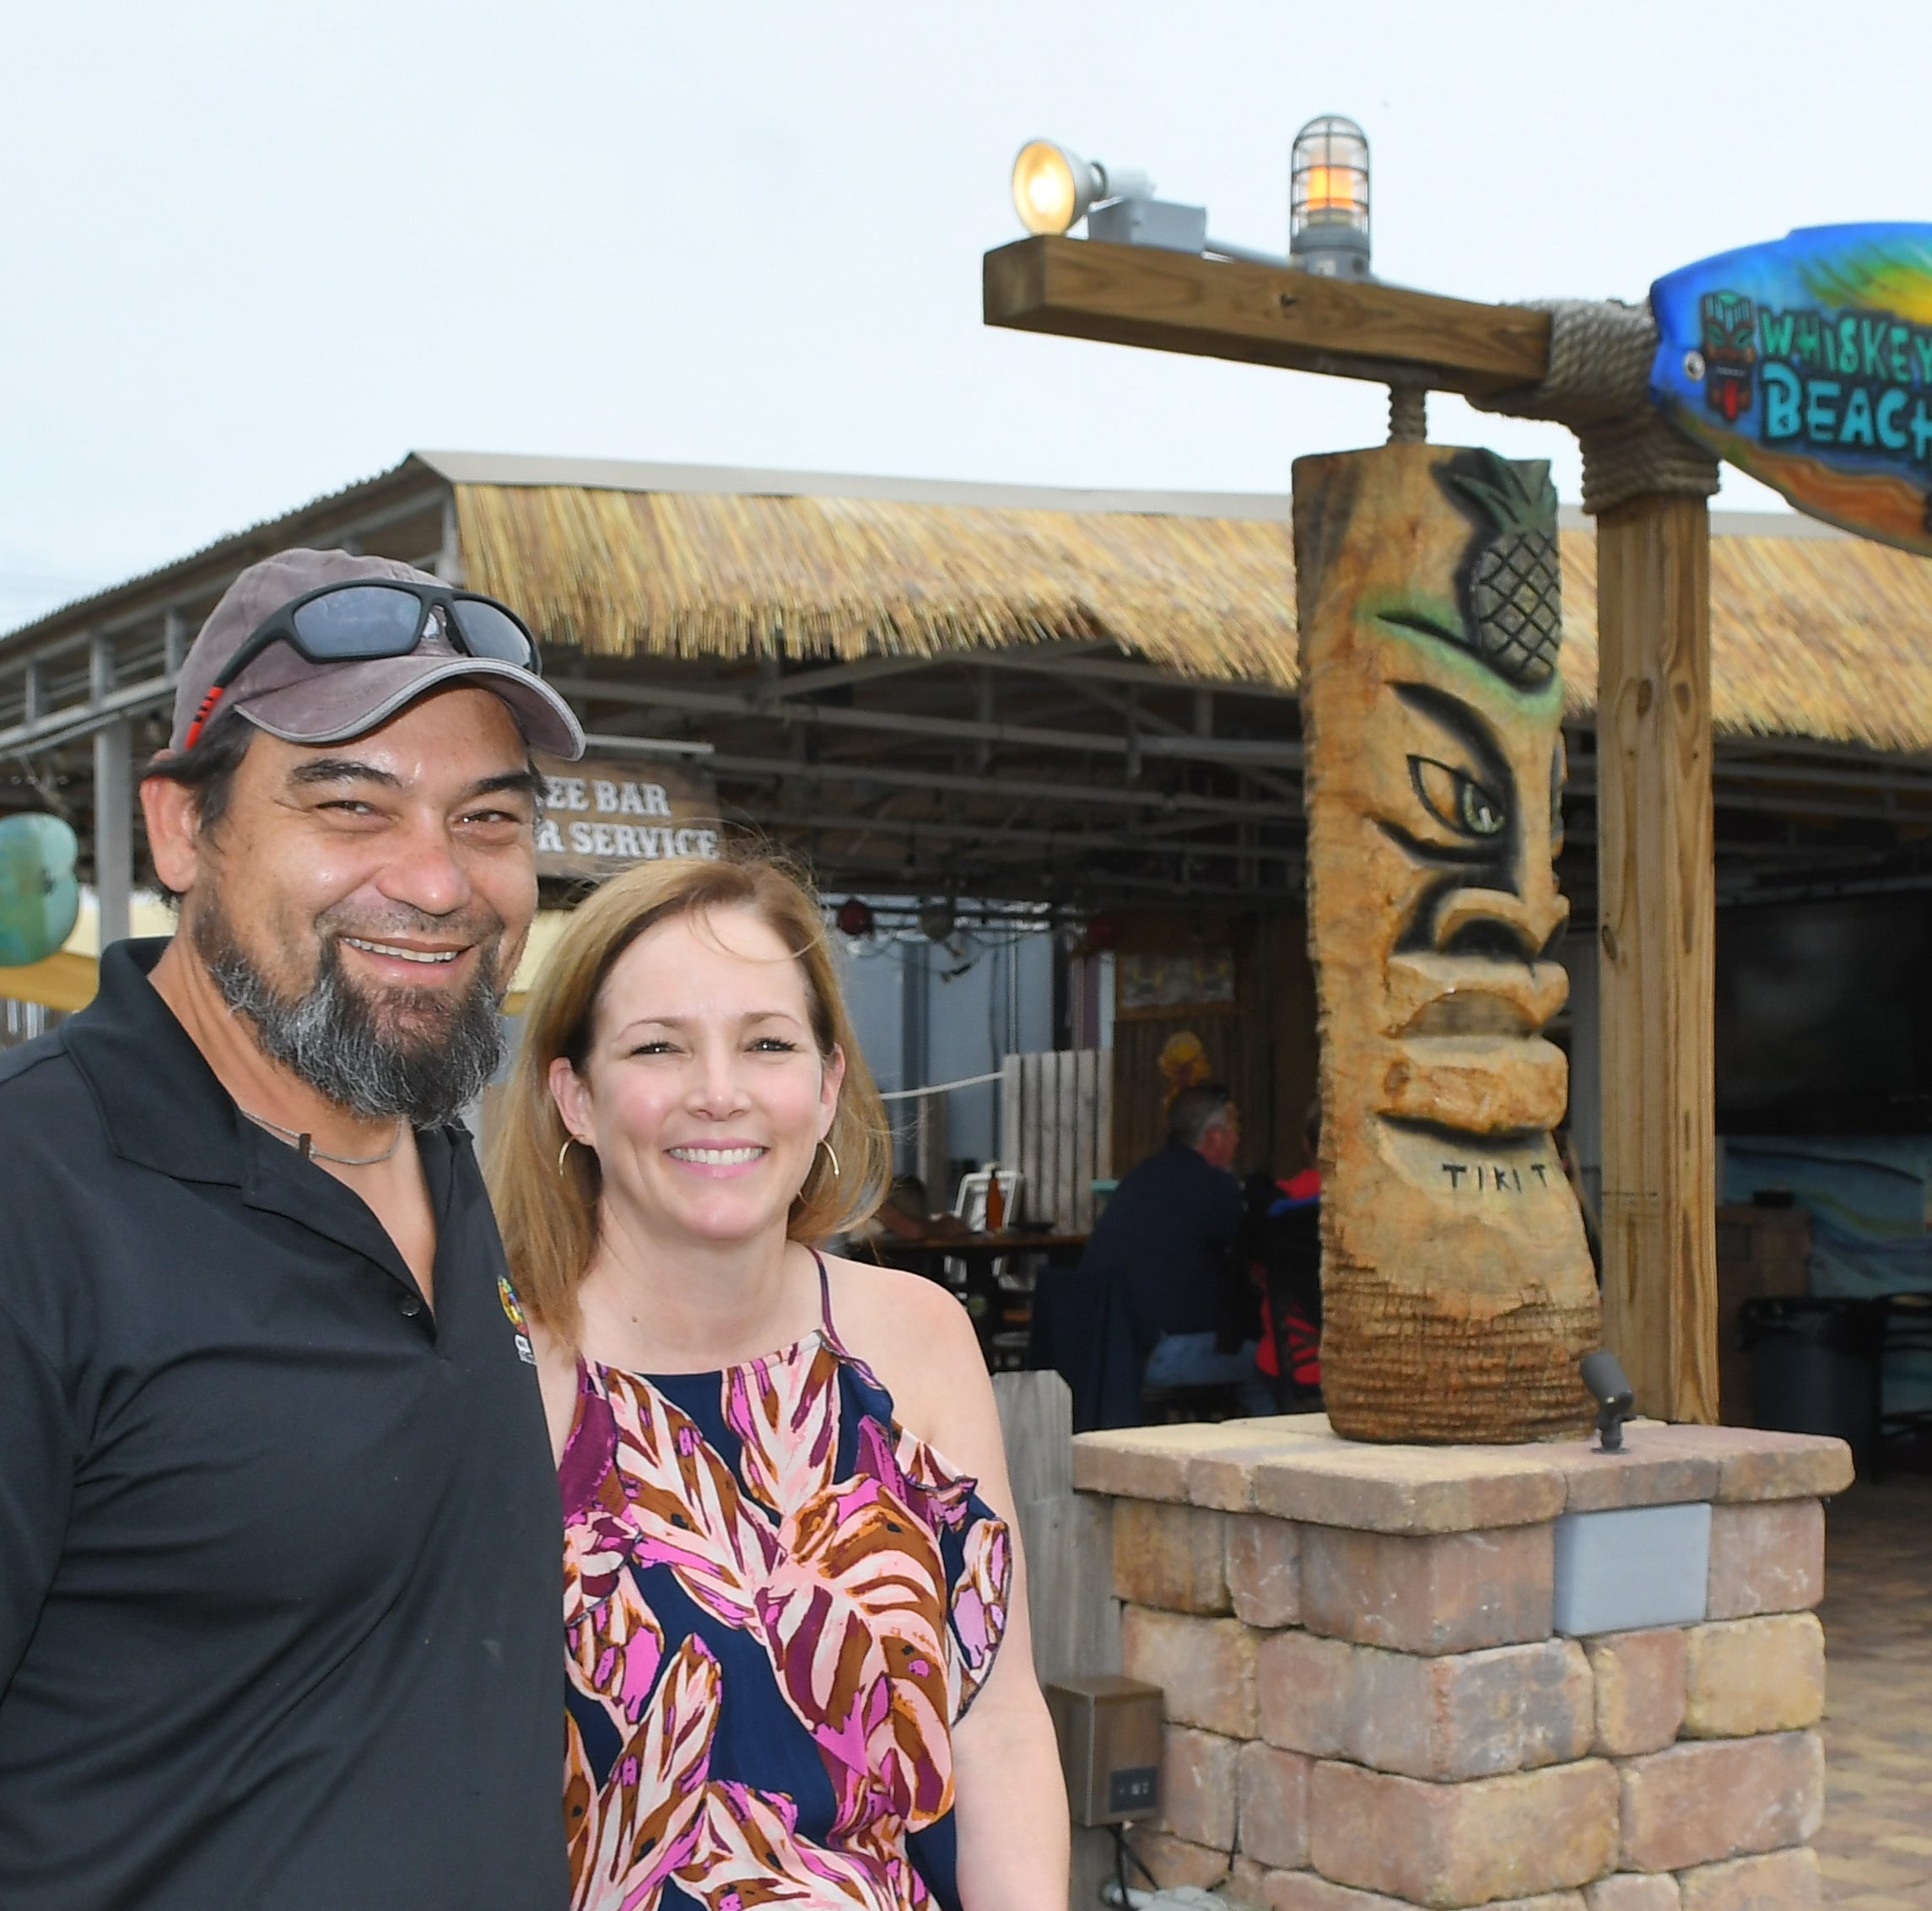 Whiskey Beach Pub moving into The Cove's former home on State Road A1A in Satellite Beach